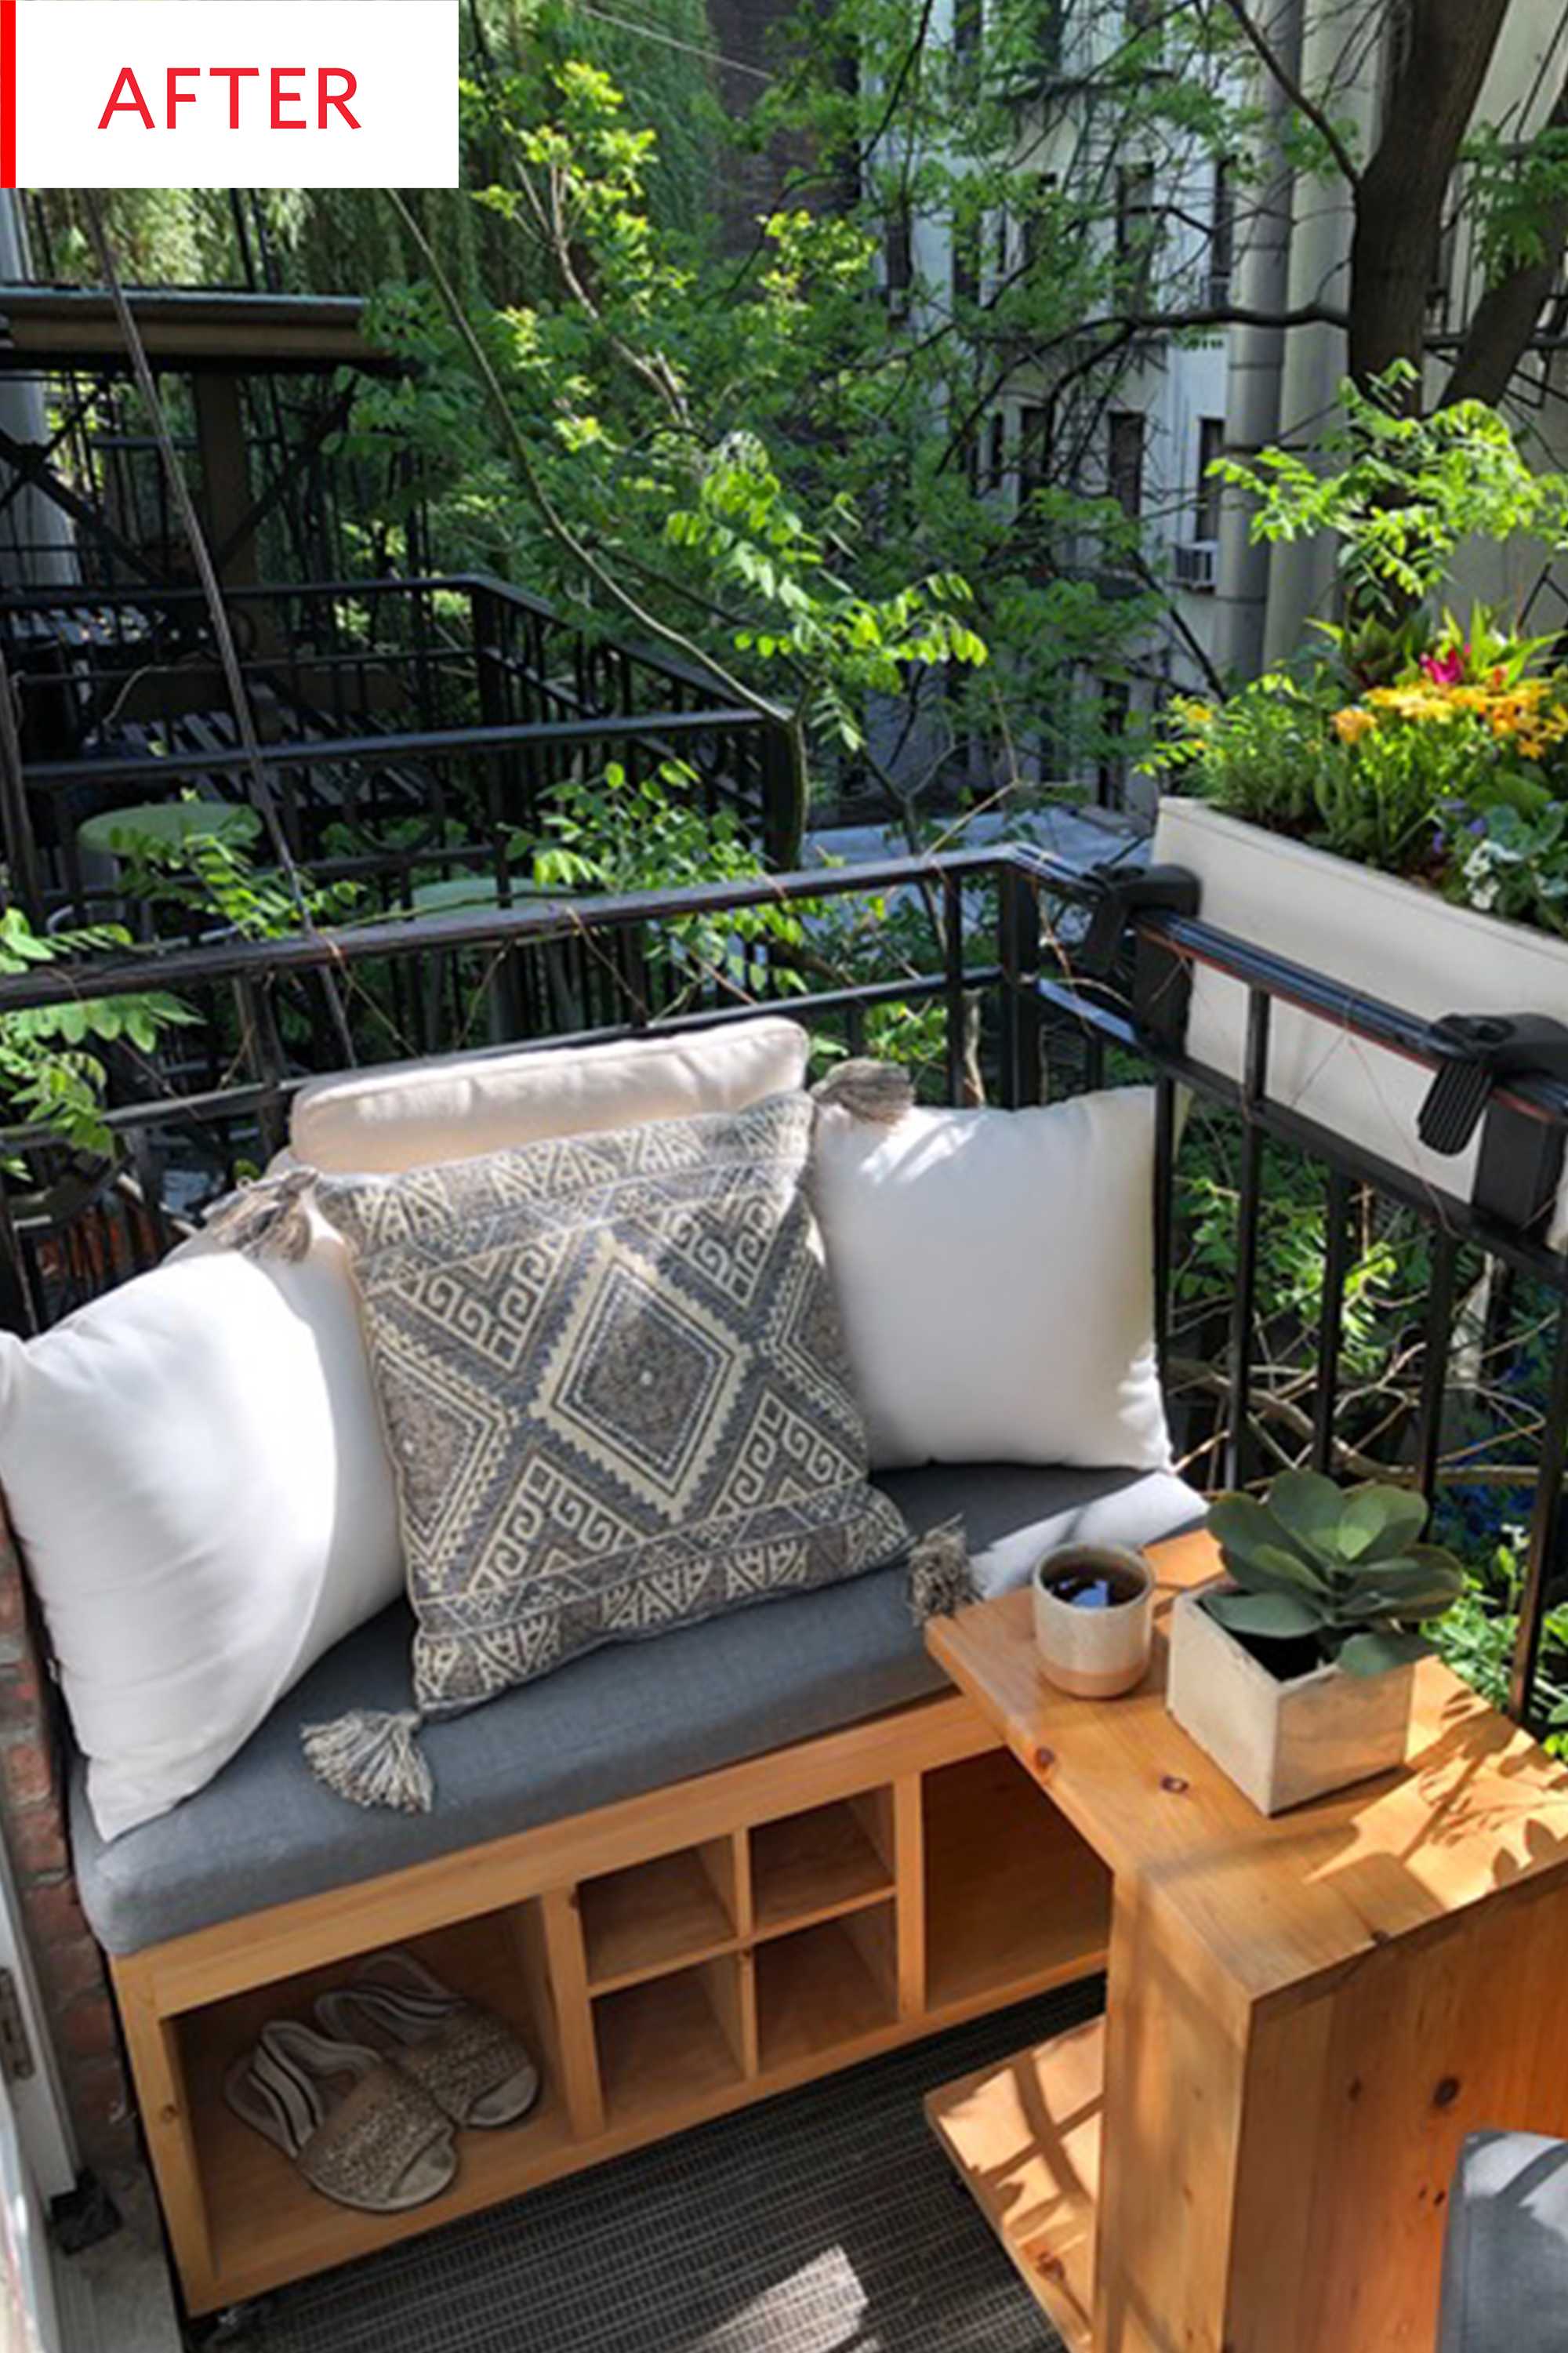 This 200-Square-Foot Apartment Has An Equally Super Tiny ... on Small Square Patio Ideas id=49781